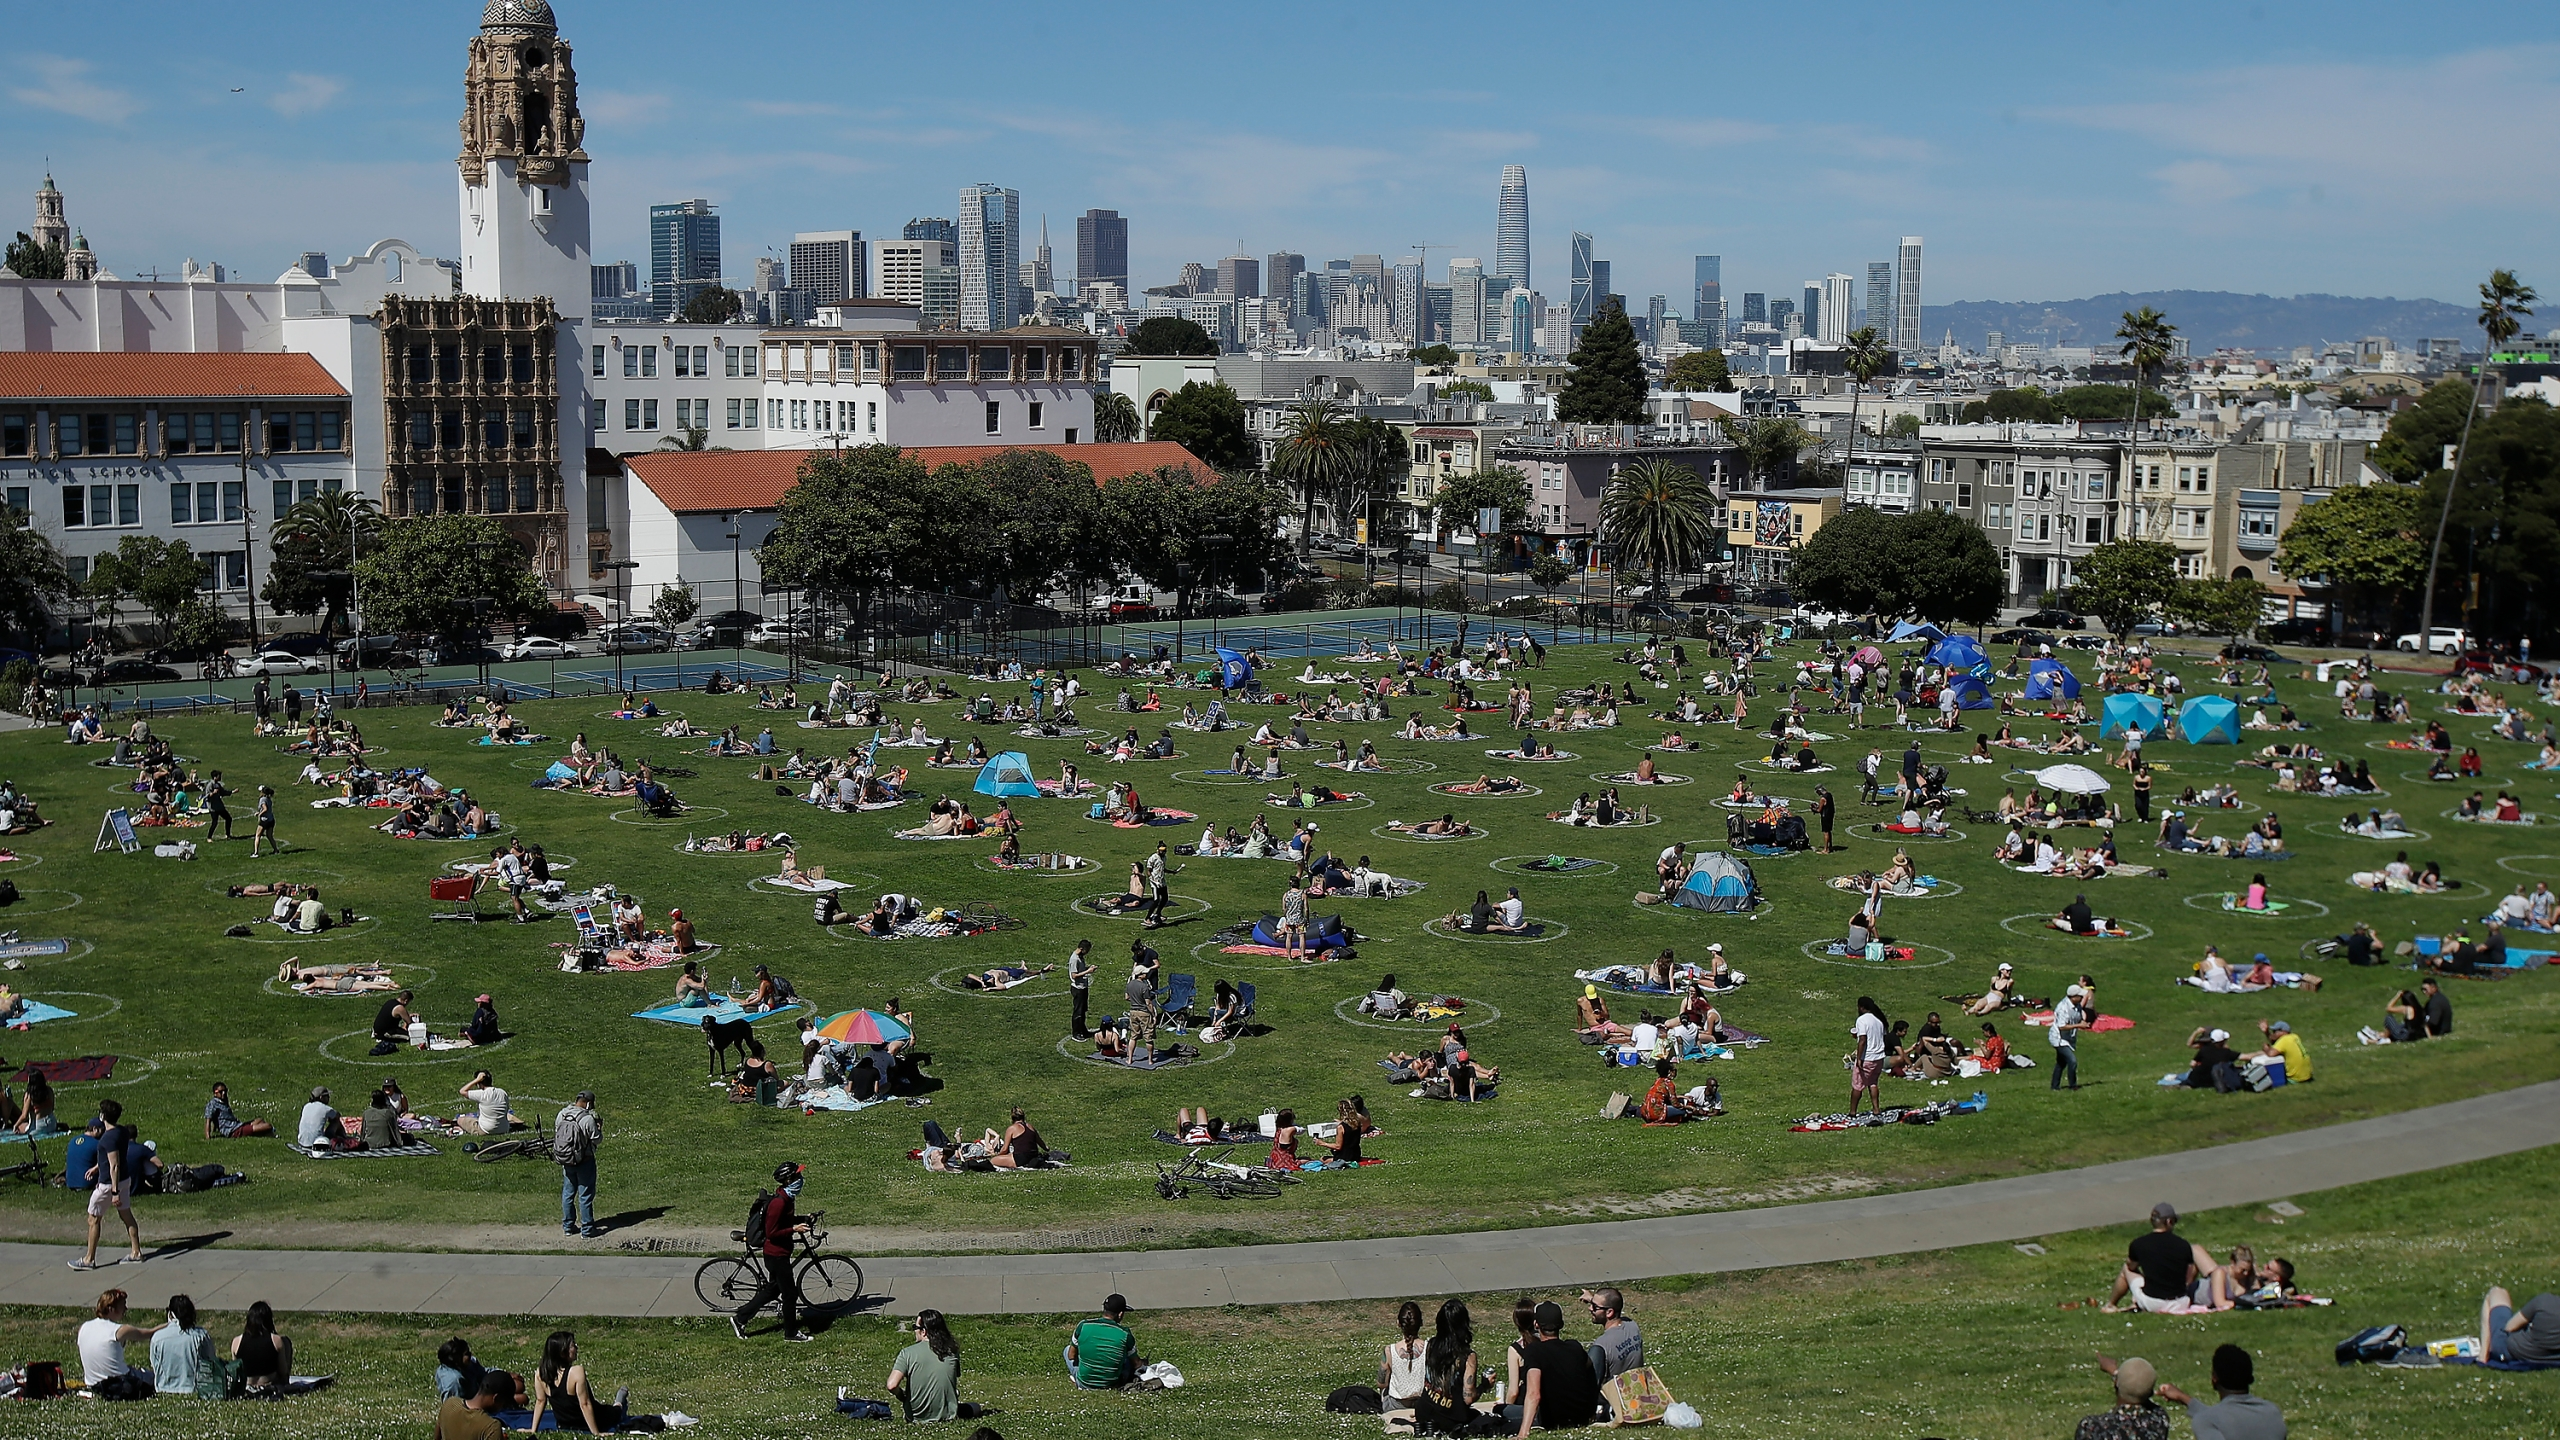 Visitors set up inside circles designed to help prevent the spread of the coronavirus by encouraging social distancing at Dolores Park in San Francisco on May 24, 2020. (AP Photo/Jeff Chiu, File)